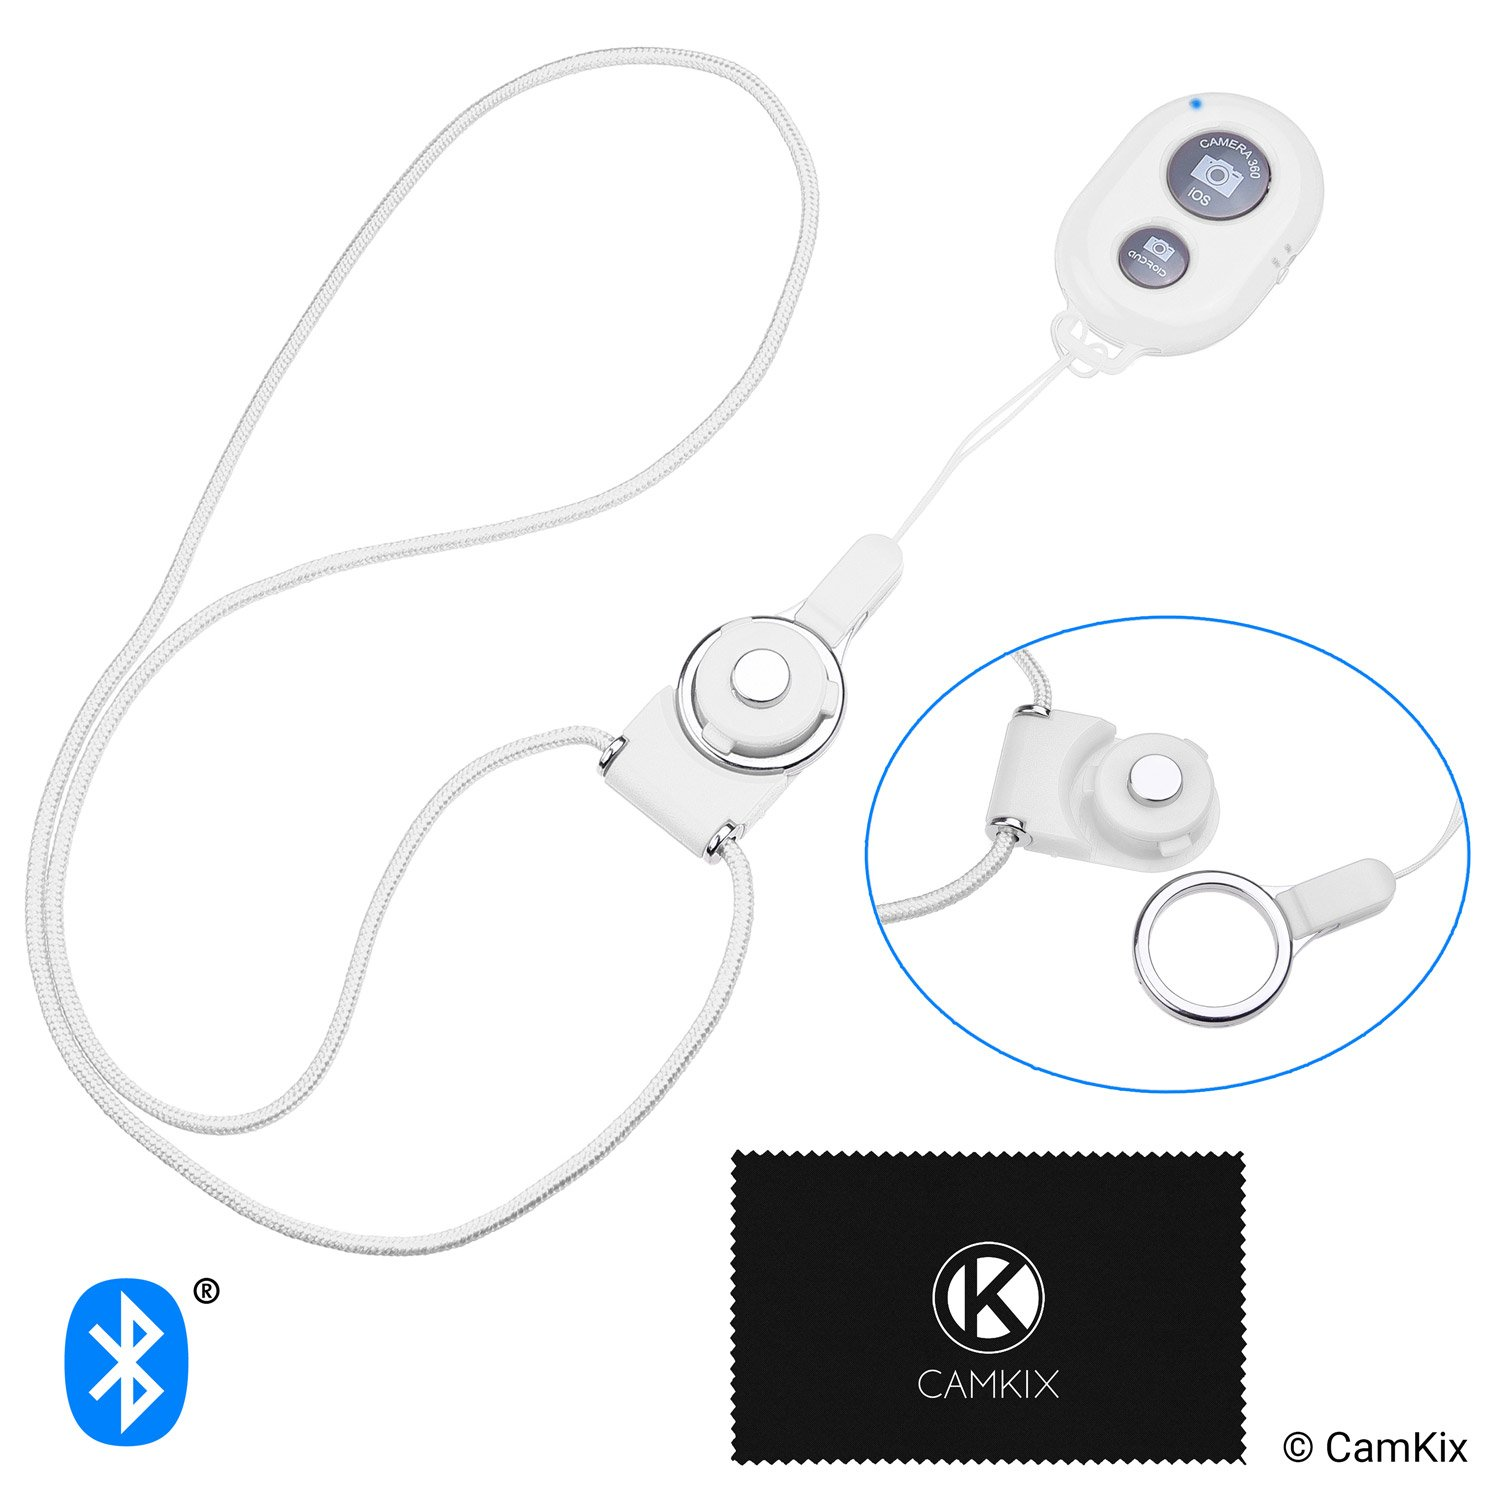 CamKix Camera Shutter Remote Control with Bluetooth Wireless Technology - White - Lanyard with Detachable Ring Mount - Capture Pictures/Video Wirelessly at 30 ft Compatible with iPhone/Android